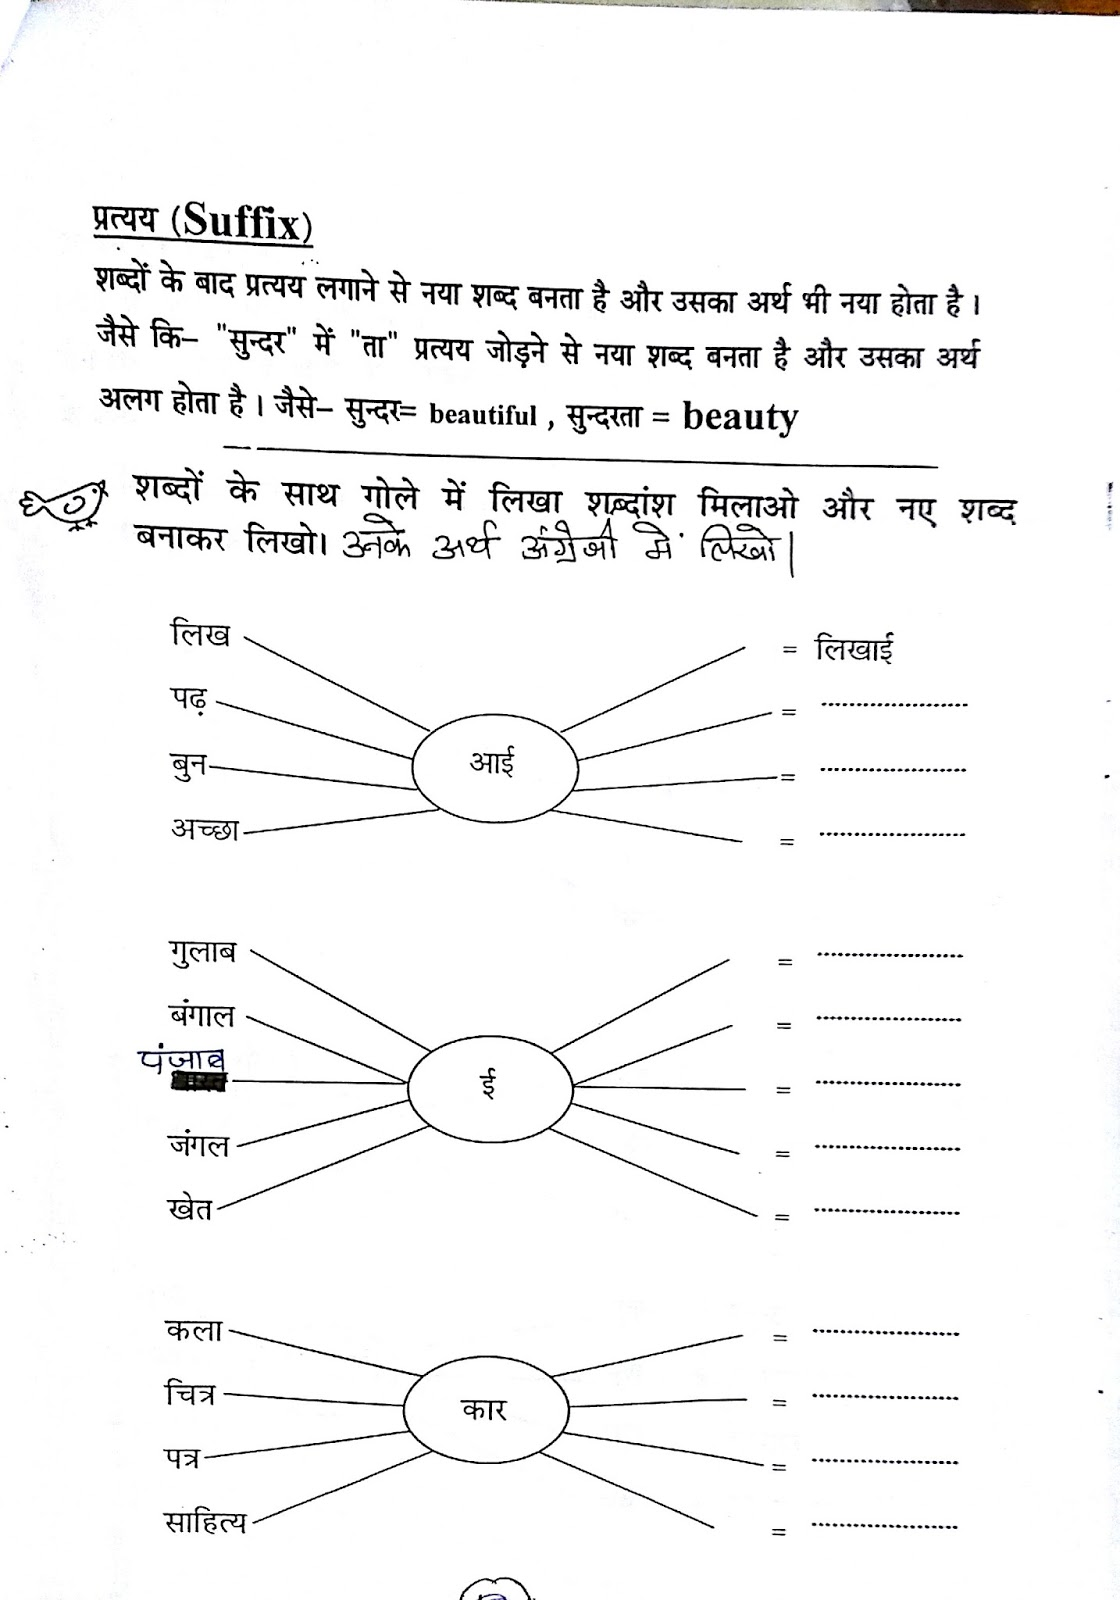 Hindi Grammar Work Sheet Collection For Classes 5 6 7 Amp 8 Prefix And Suffix Work Sheets For